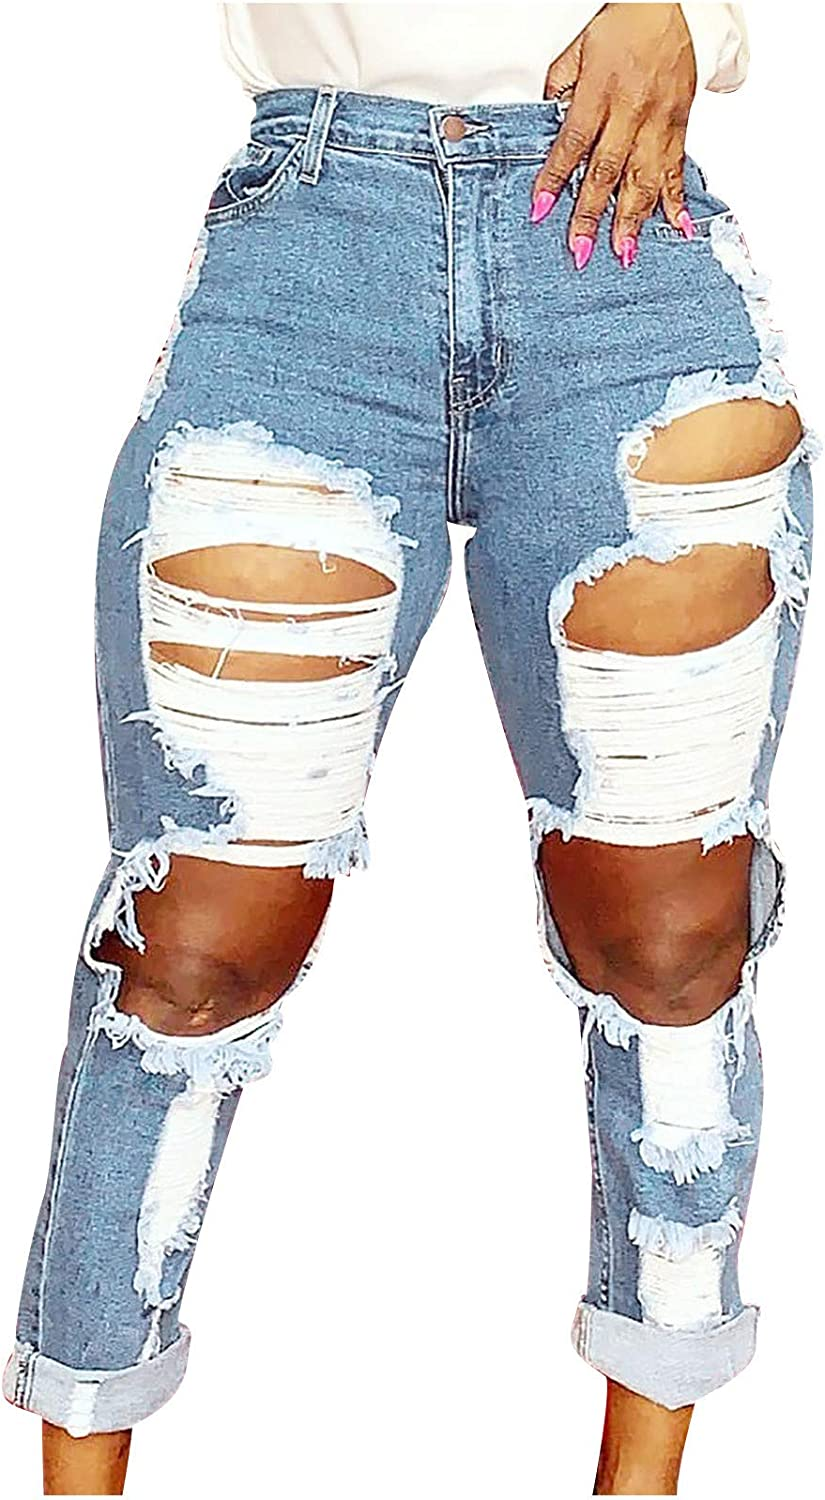 LONEA High Rise Denim Jeans for Women Ripped Stretch Pocket Pants Slim Rolling-Up Jeans